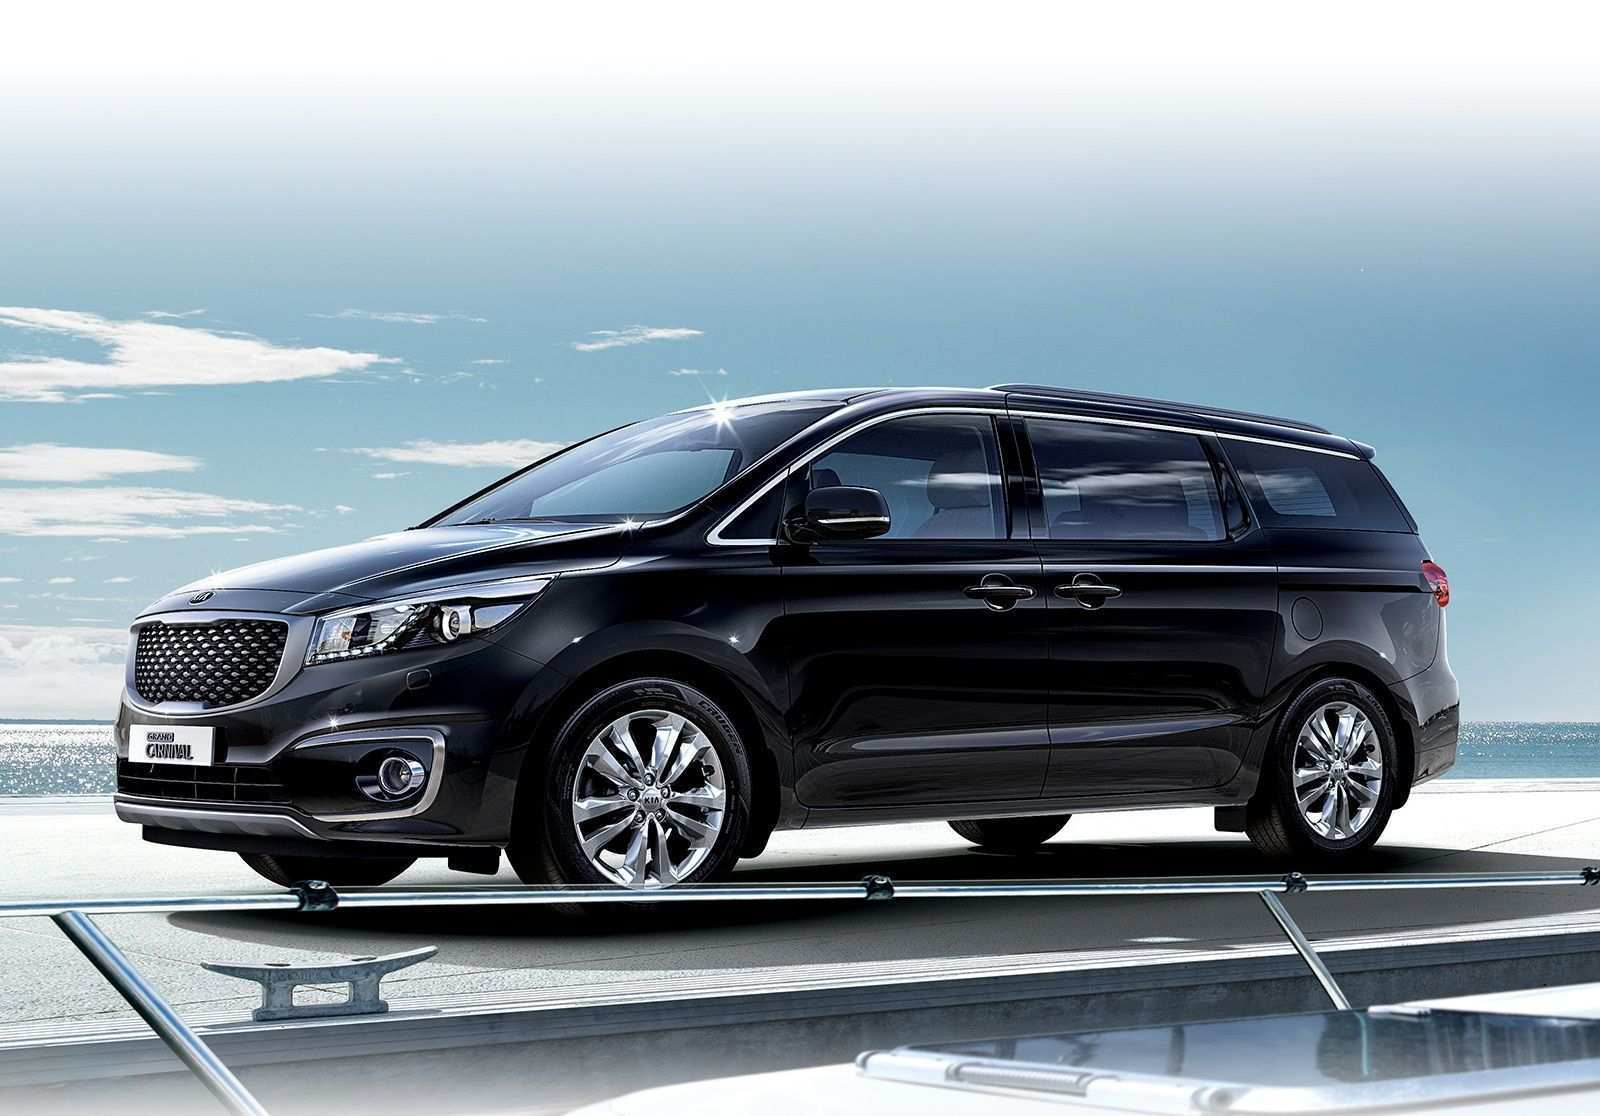 75 New Kia Grand Carnival 2019 Review Price And Review